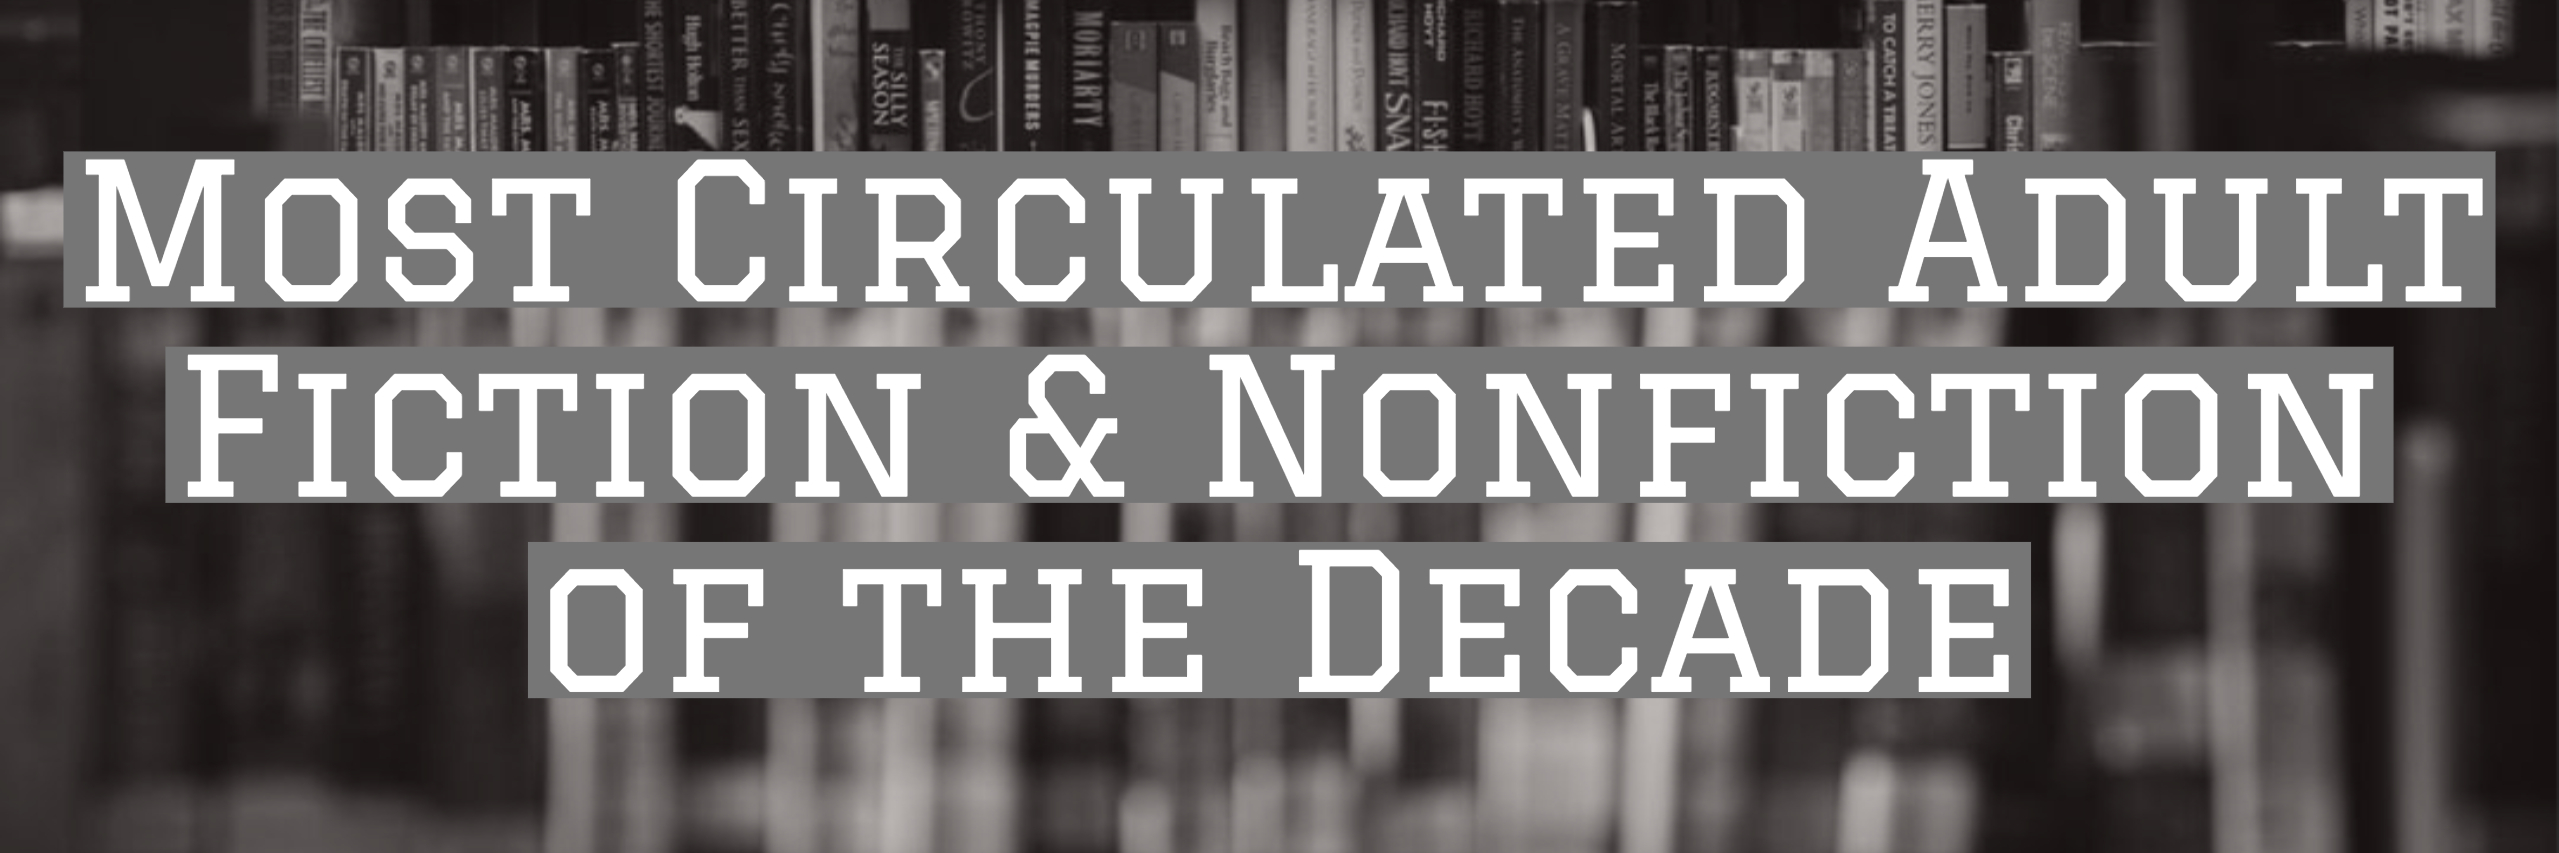 Most Circulated Fiction and Nonfiction Books of the Decade